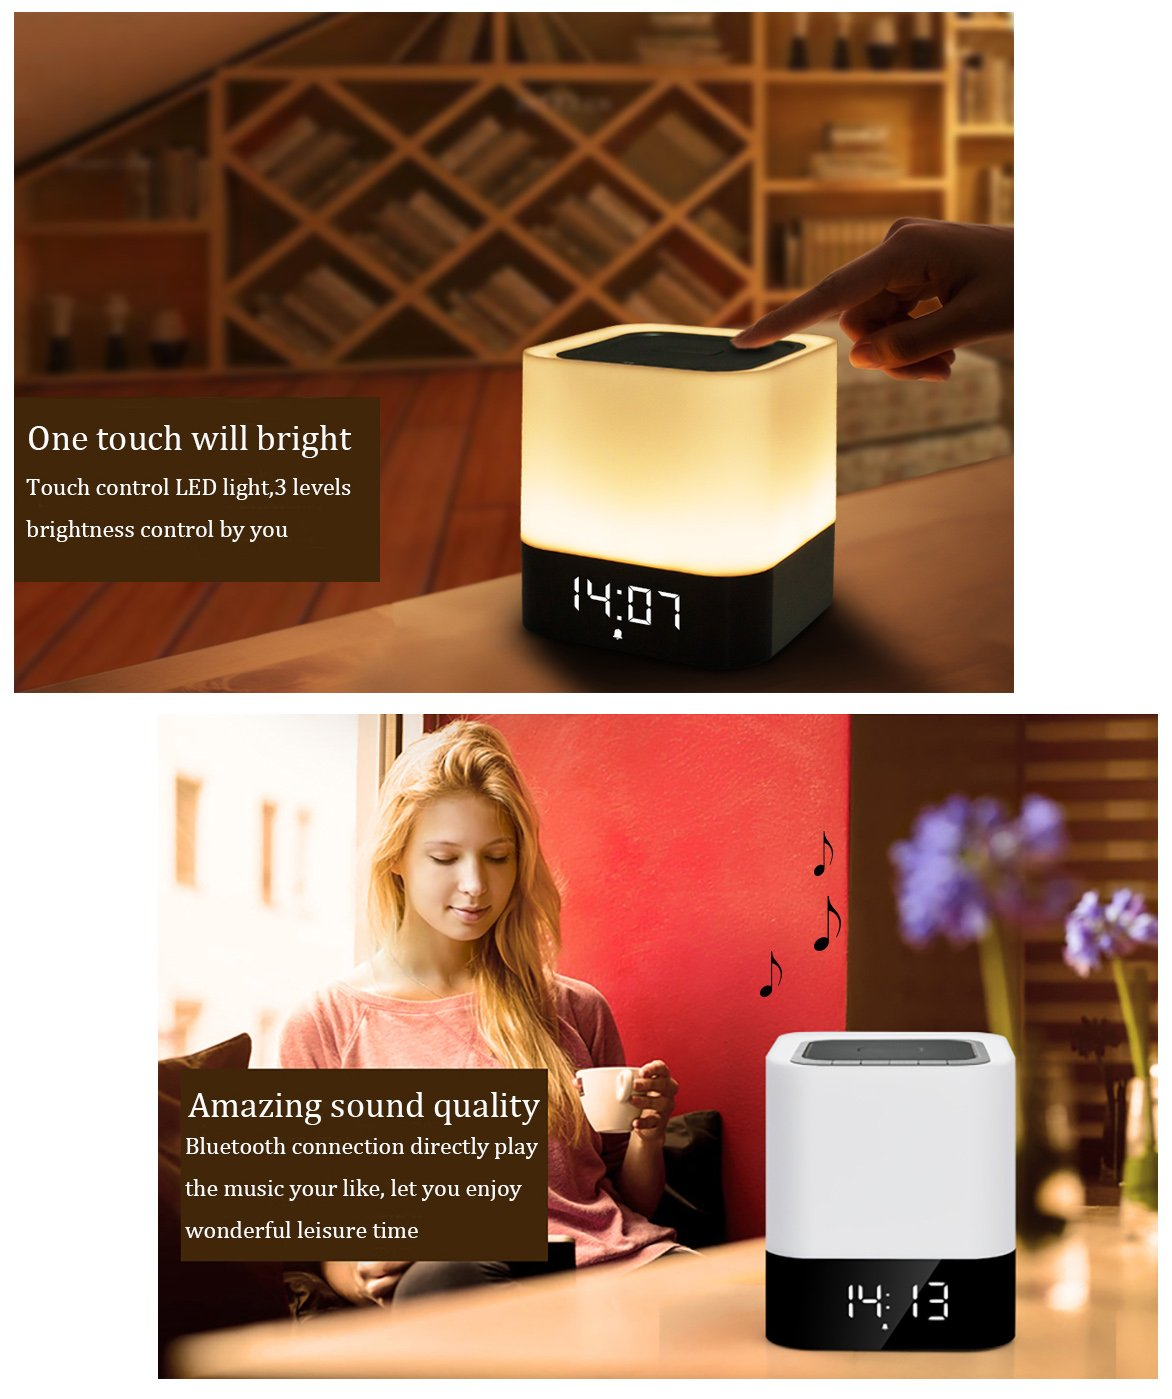 WamGra Night lights Bluetooth Speaker,Touch Sensor Bedside Lamp Dimmable Warm Light,Color Changing Bedside Lamp,MP3 Music Player,Wireless Speaker with Lights (Newest Version) by WamGra (Image #6)